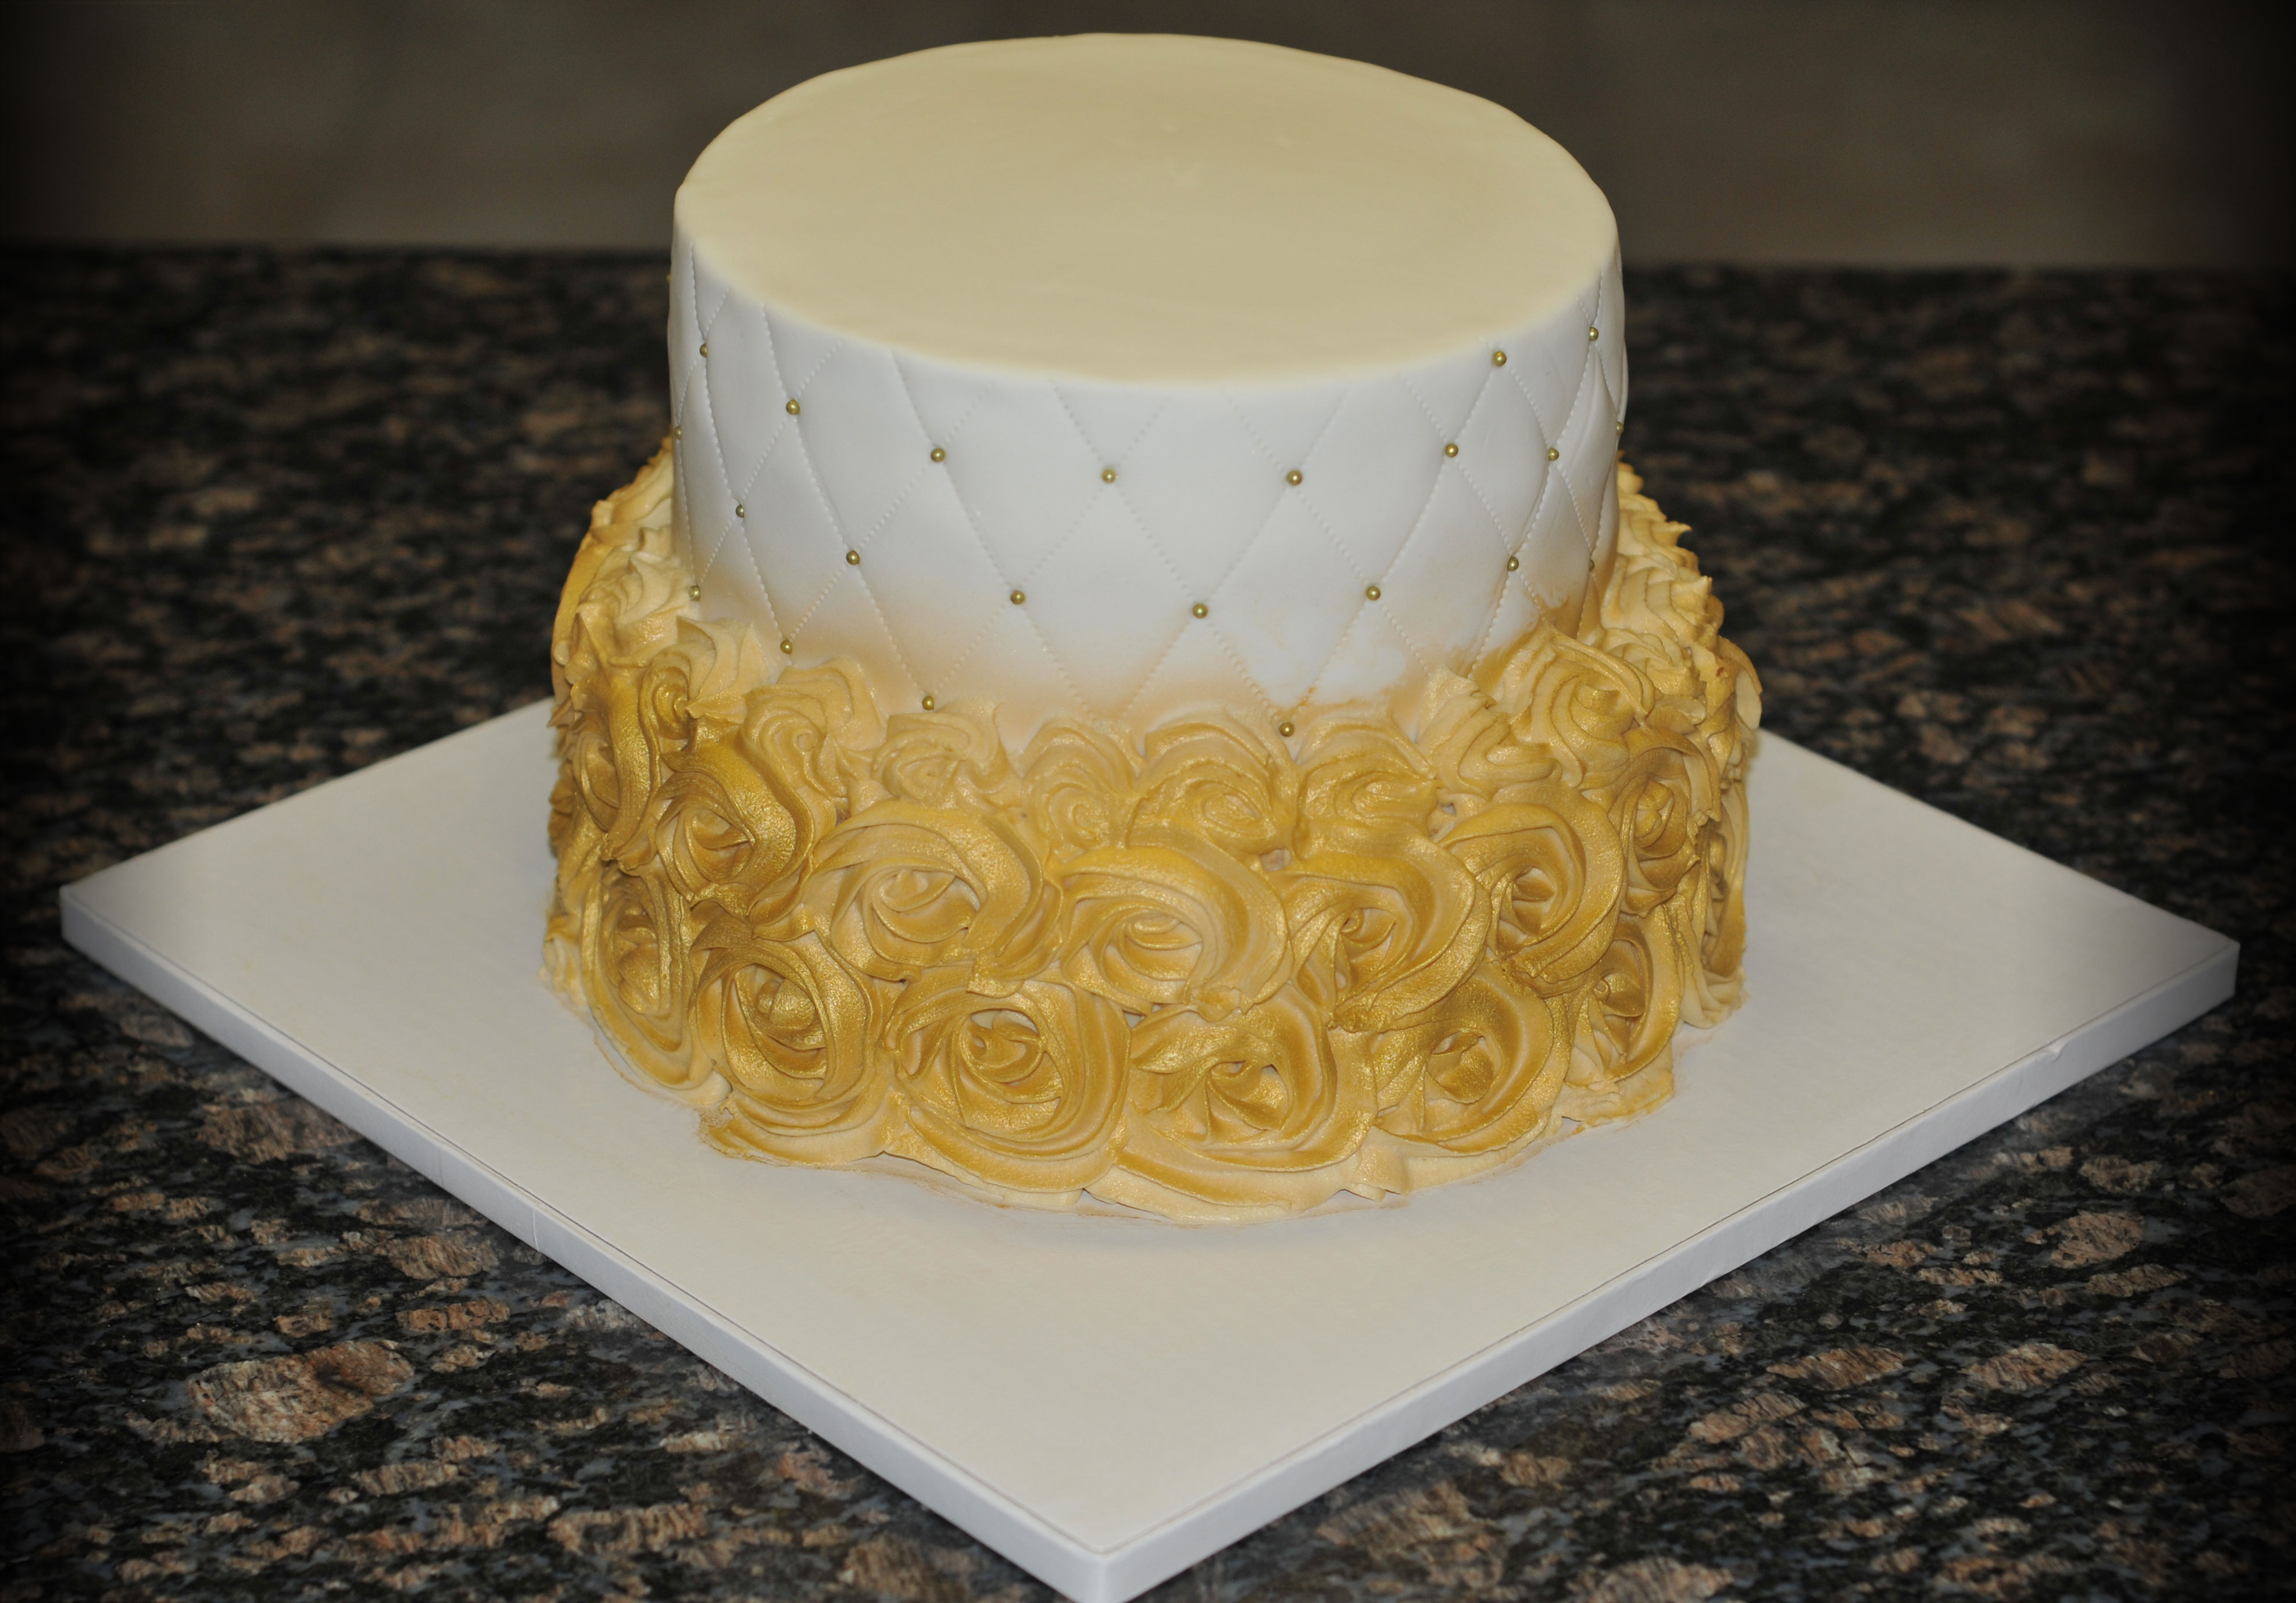 icingsrus-White-Fondant-with-Gold-Buttercream-cake